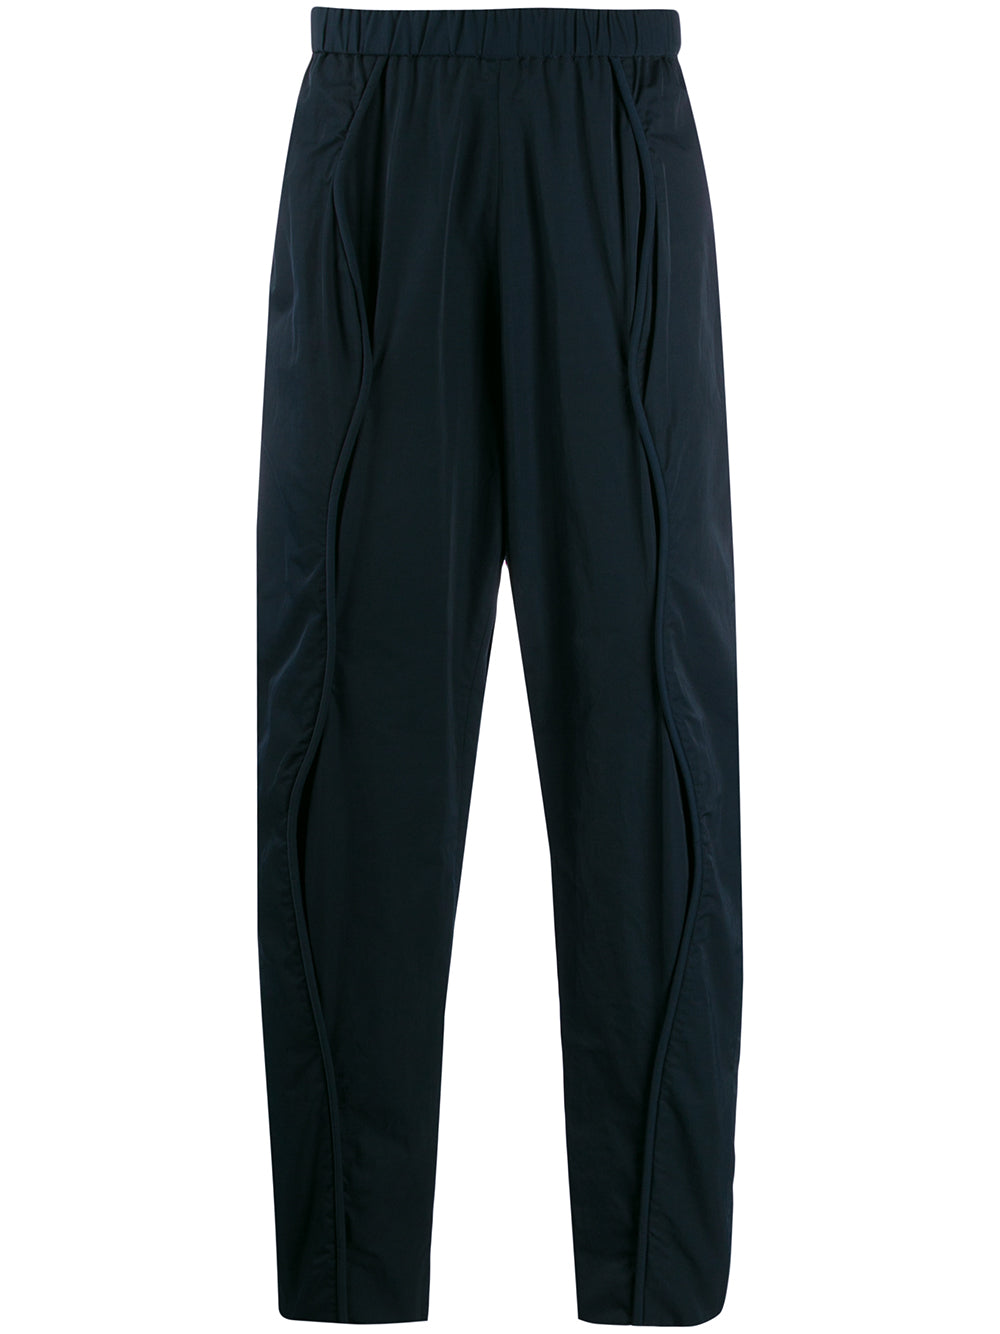 Wave Seam Trousers